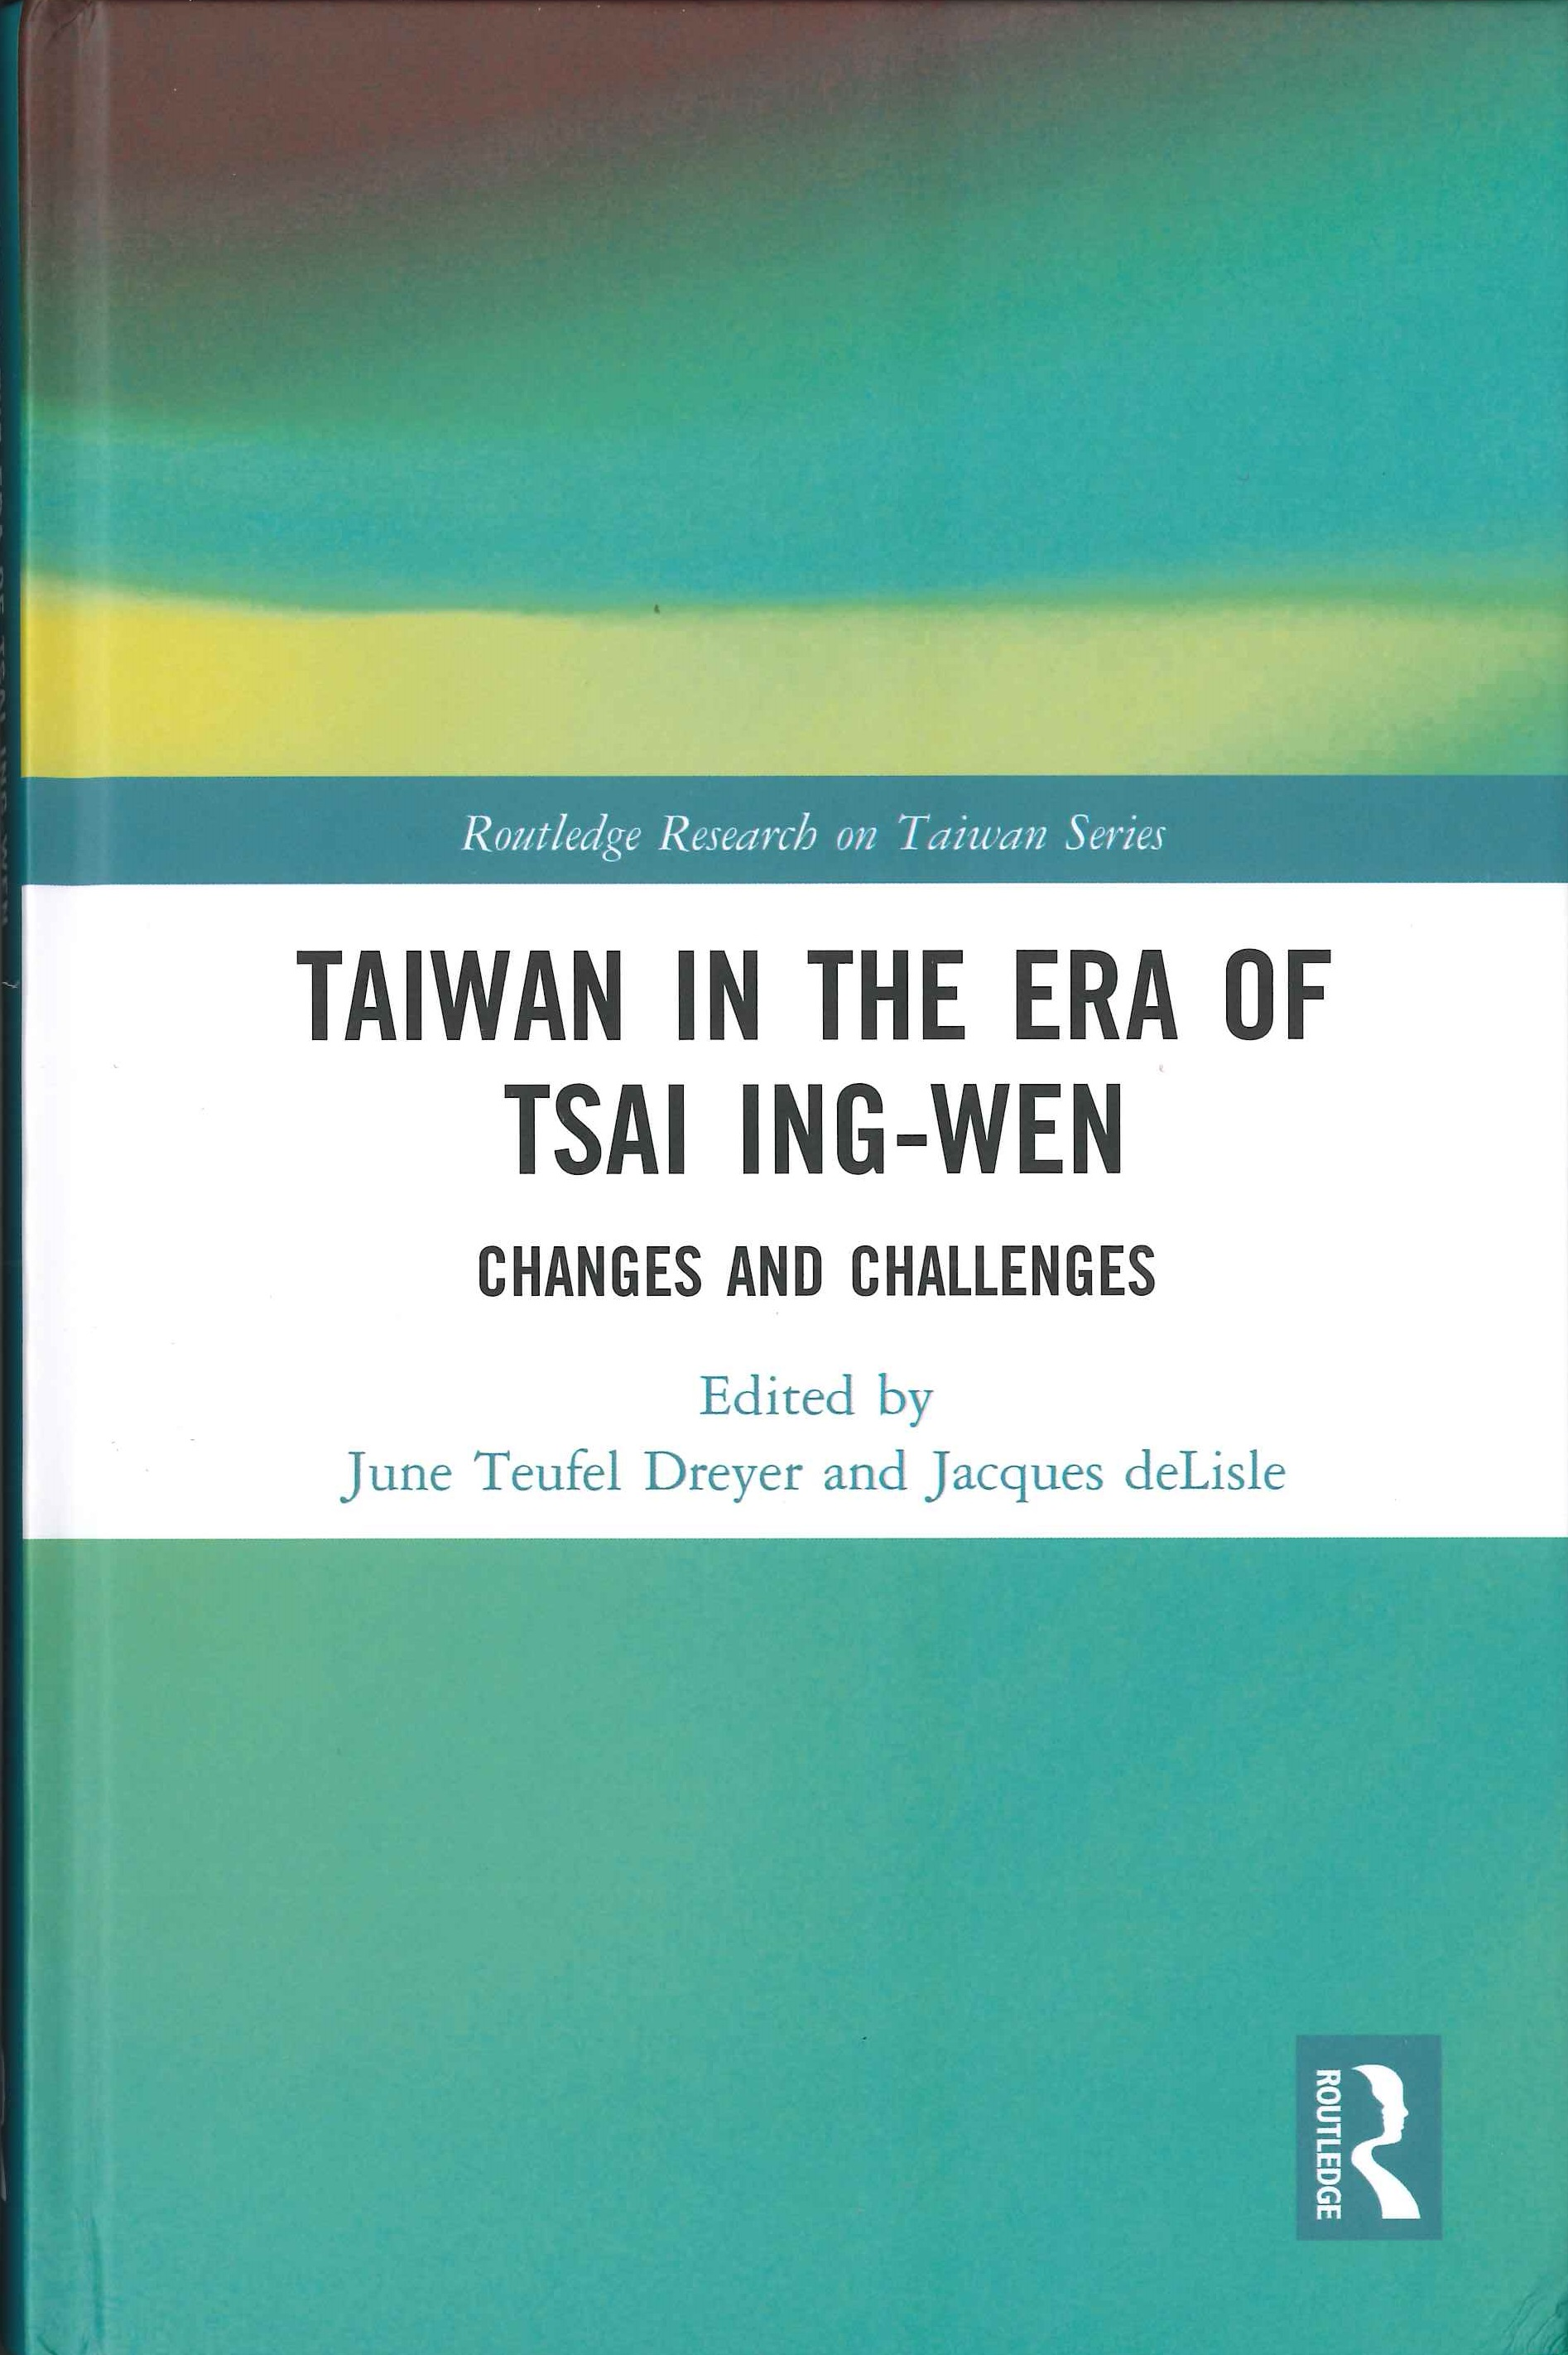 Taiwan in the era of Tsai Ing-wen:changes and challenges